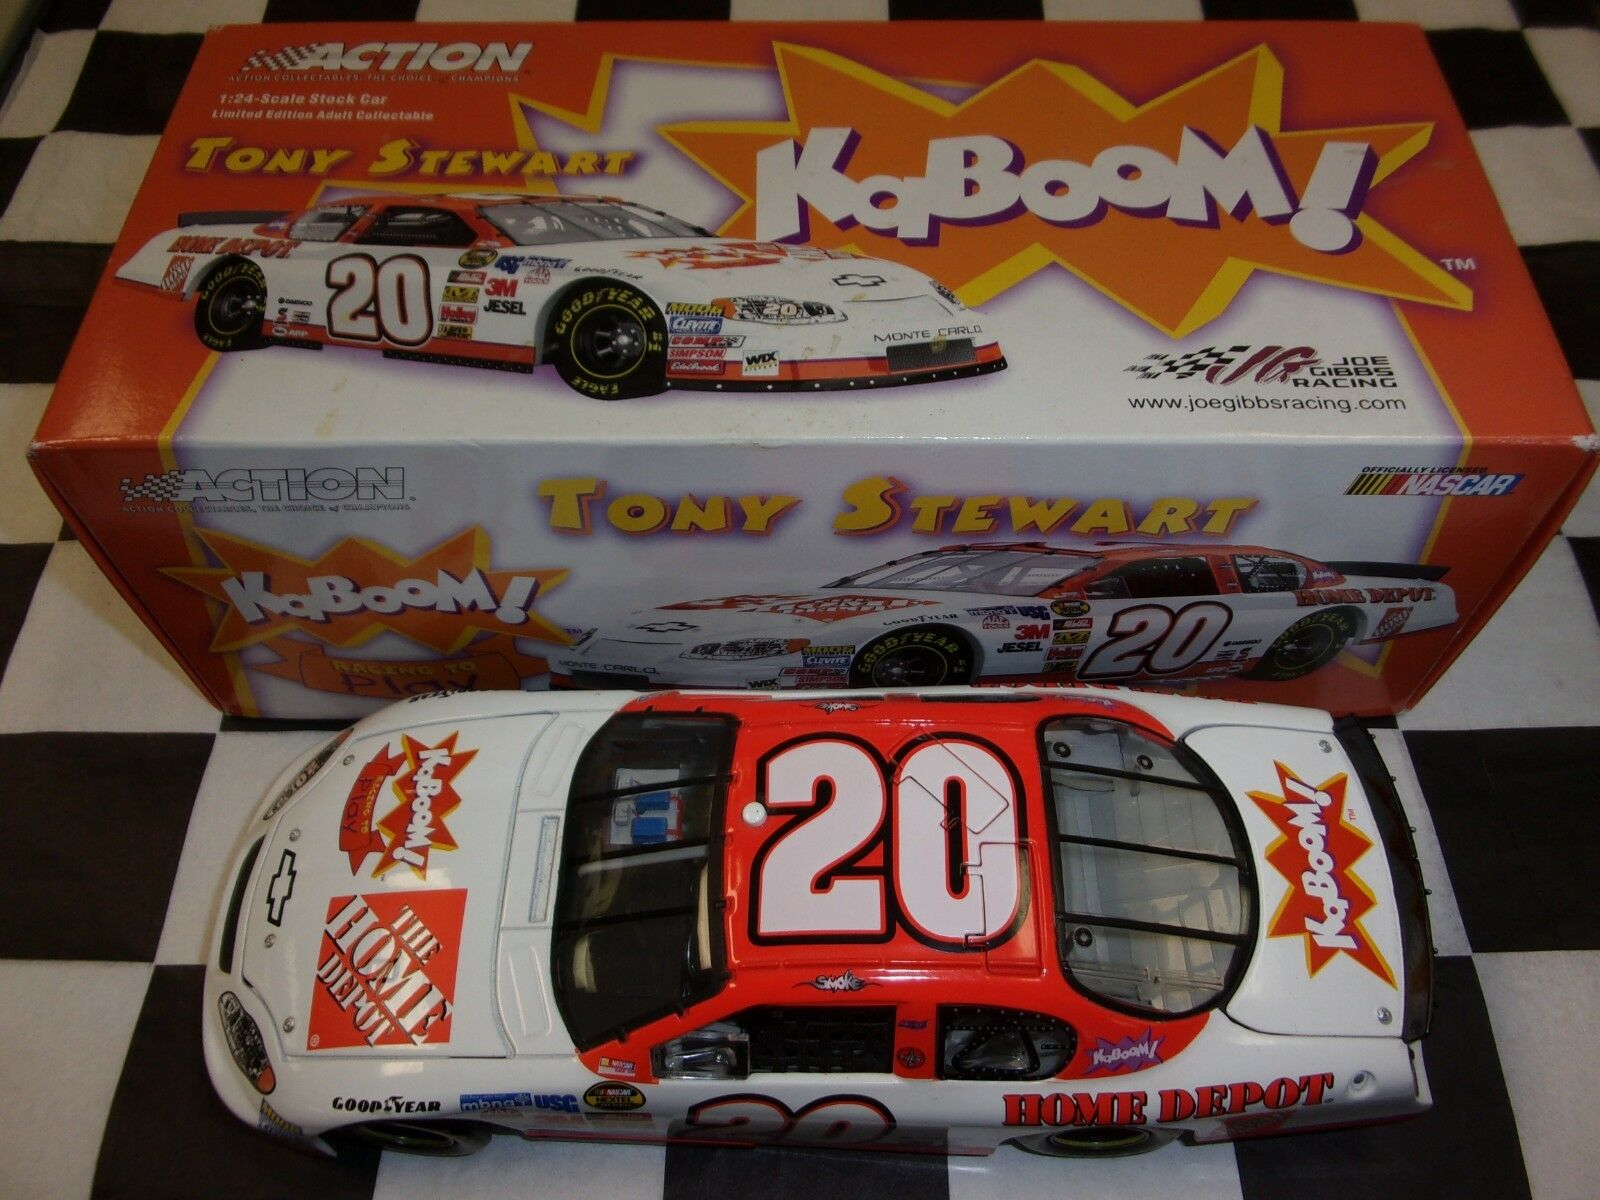 Tony Stewart  20 Home Depot Kaboom 2005 Monte Carlo NASCAR Action 1 24 scale car